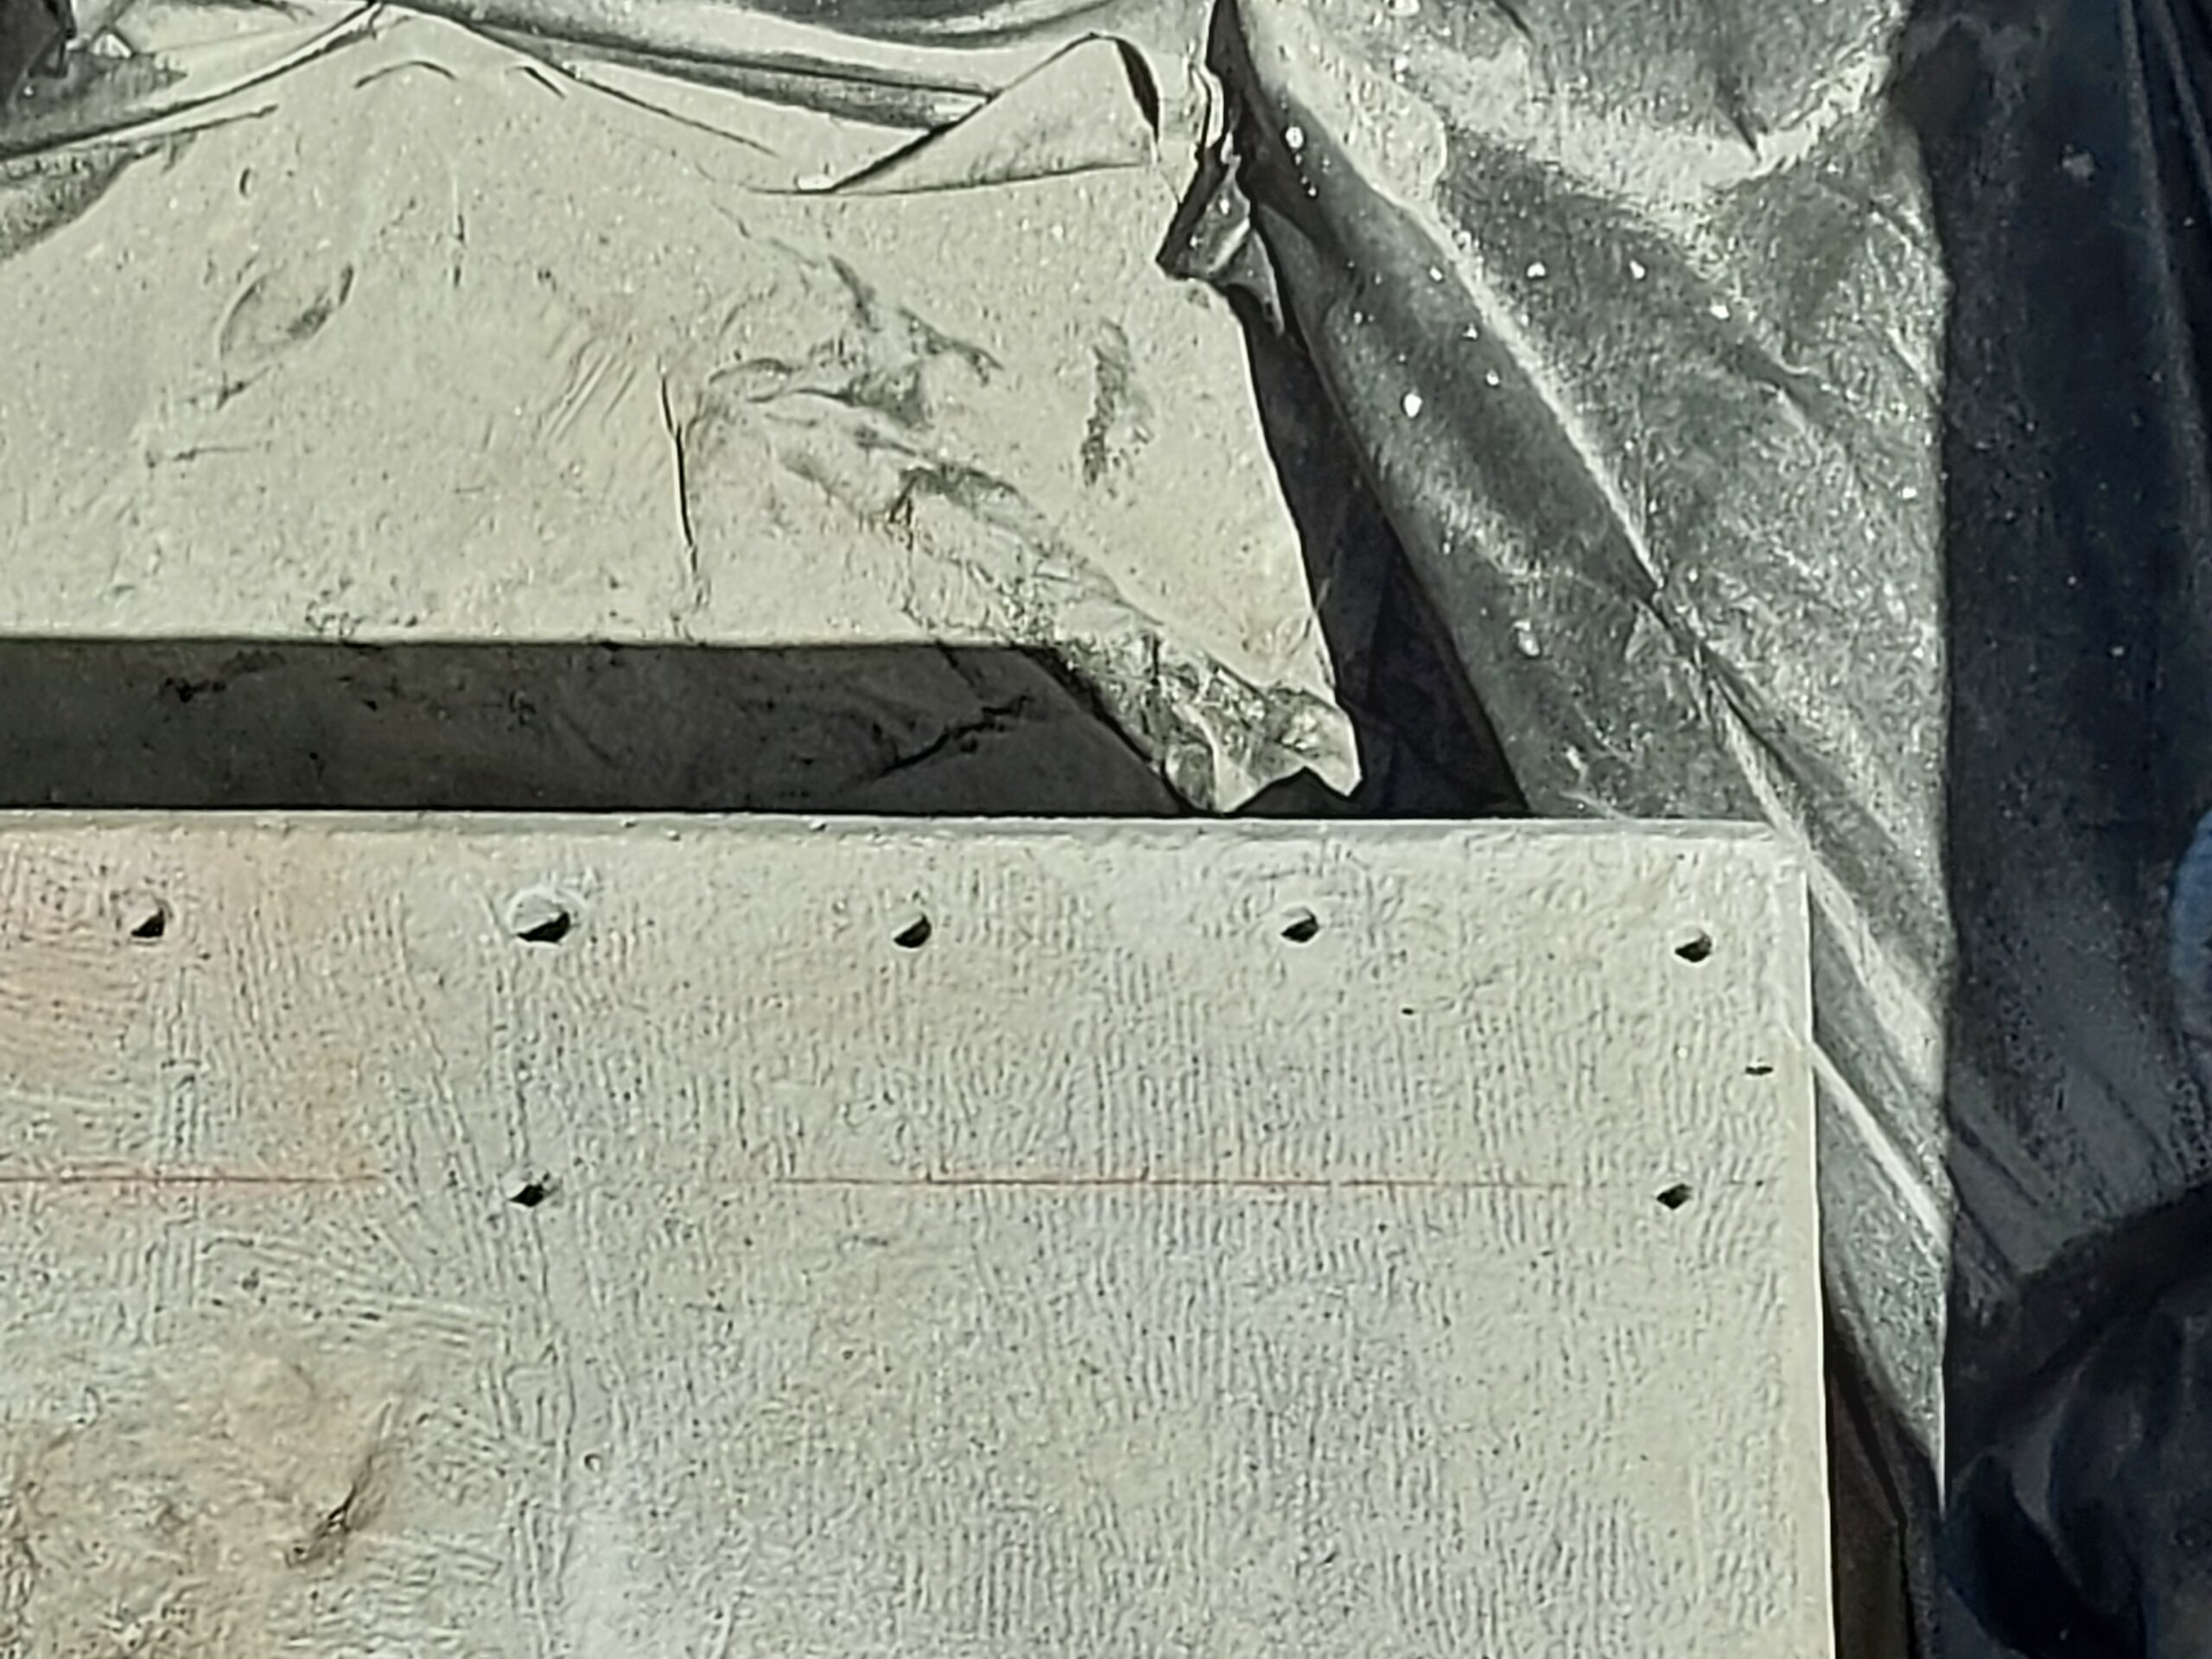 Close-up of drilled dowel holes